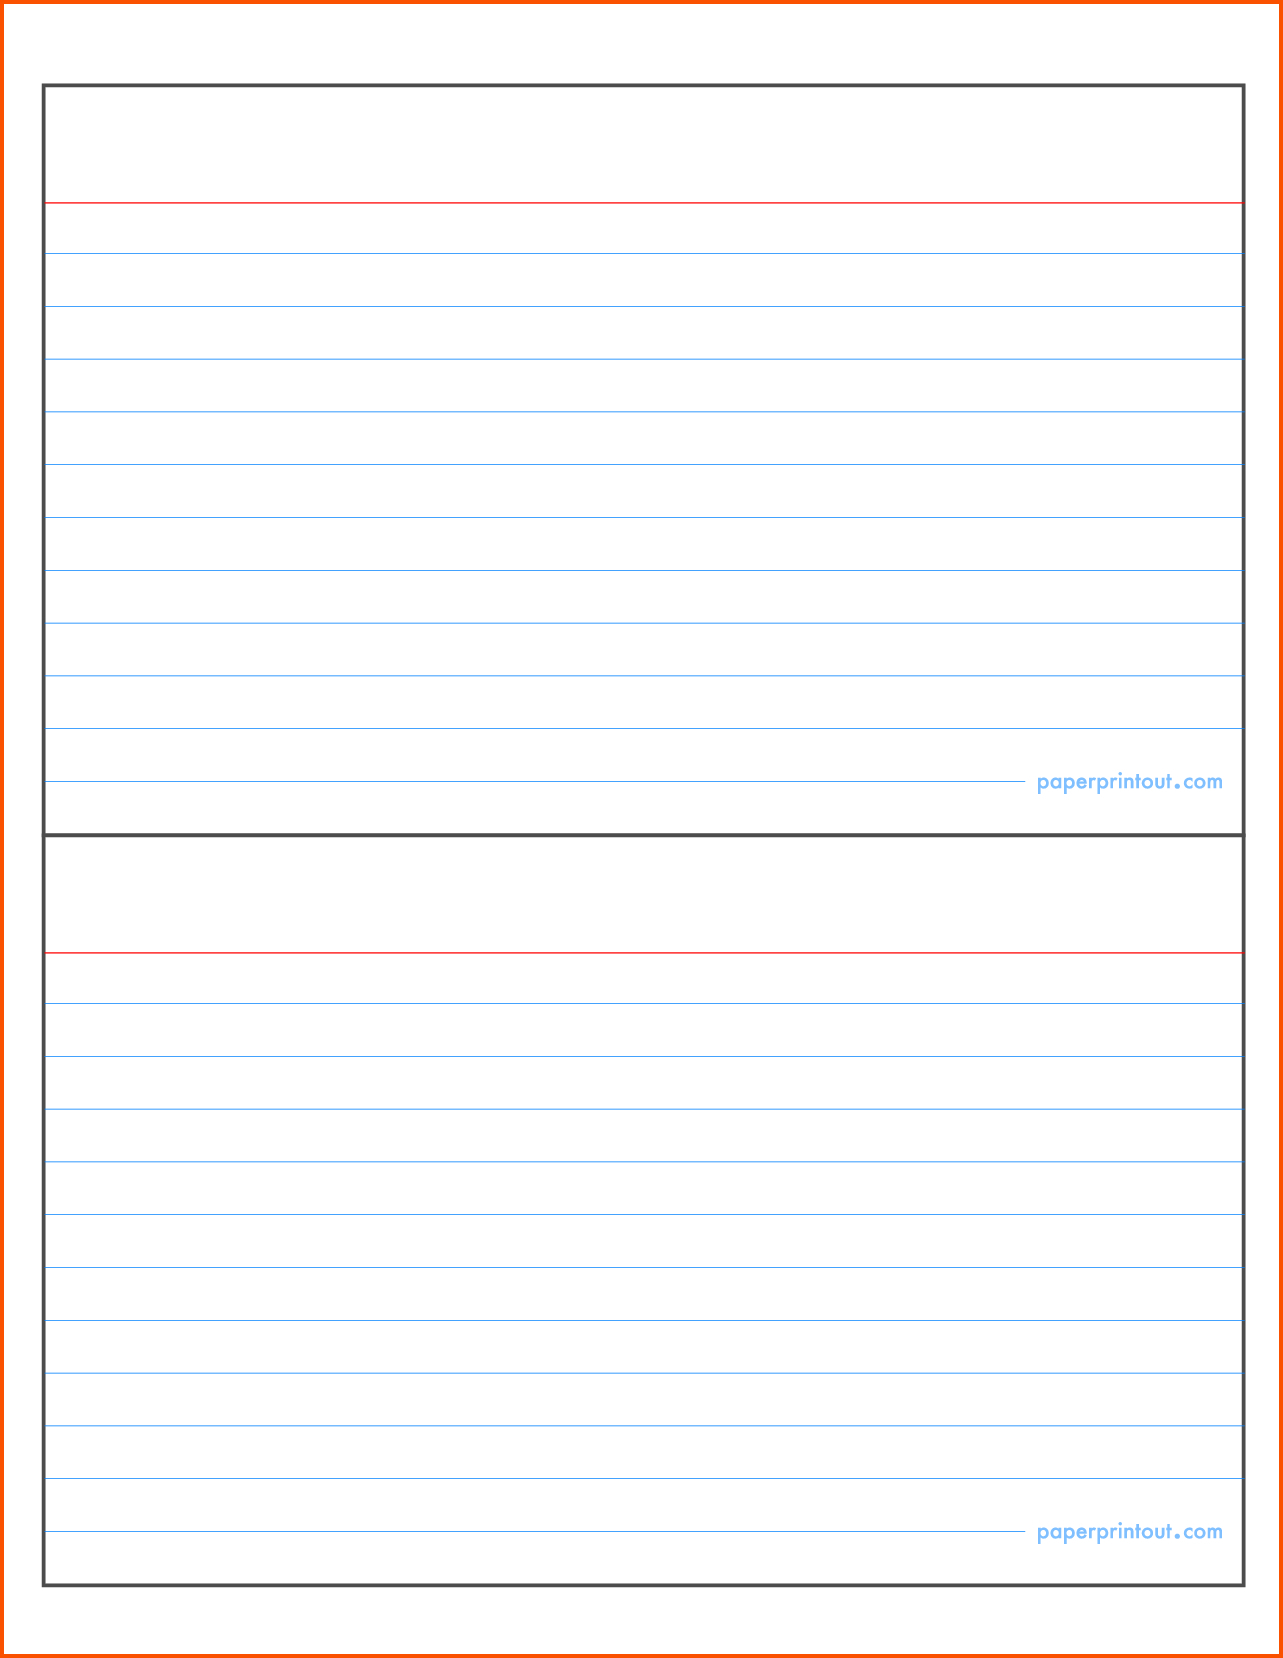 4X6 Note Card Template Word - Karati.ald2014 With 3X5 Note Card Template